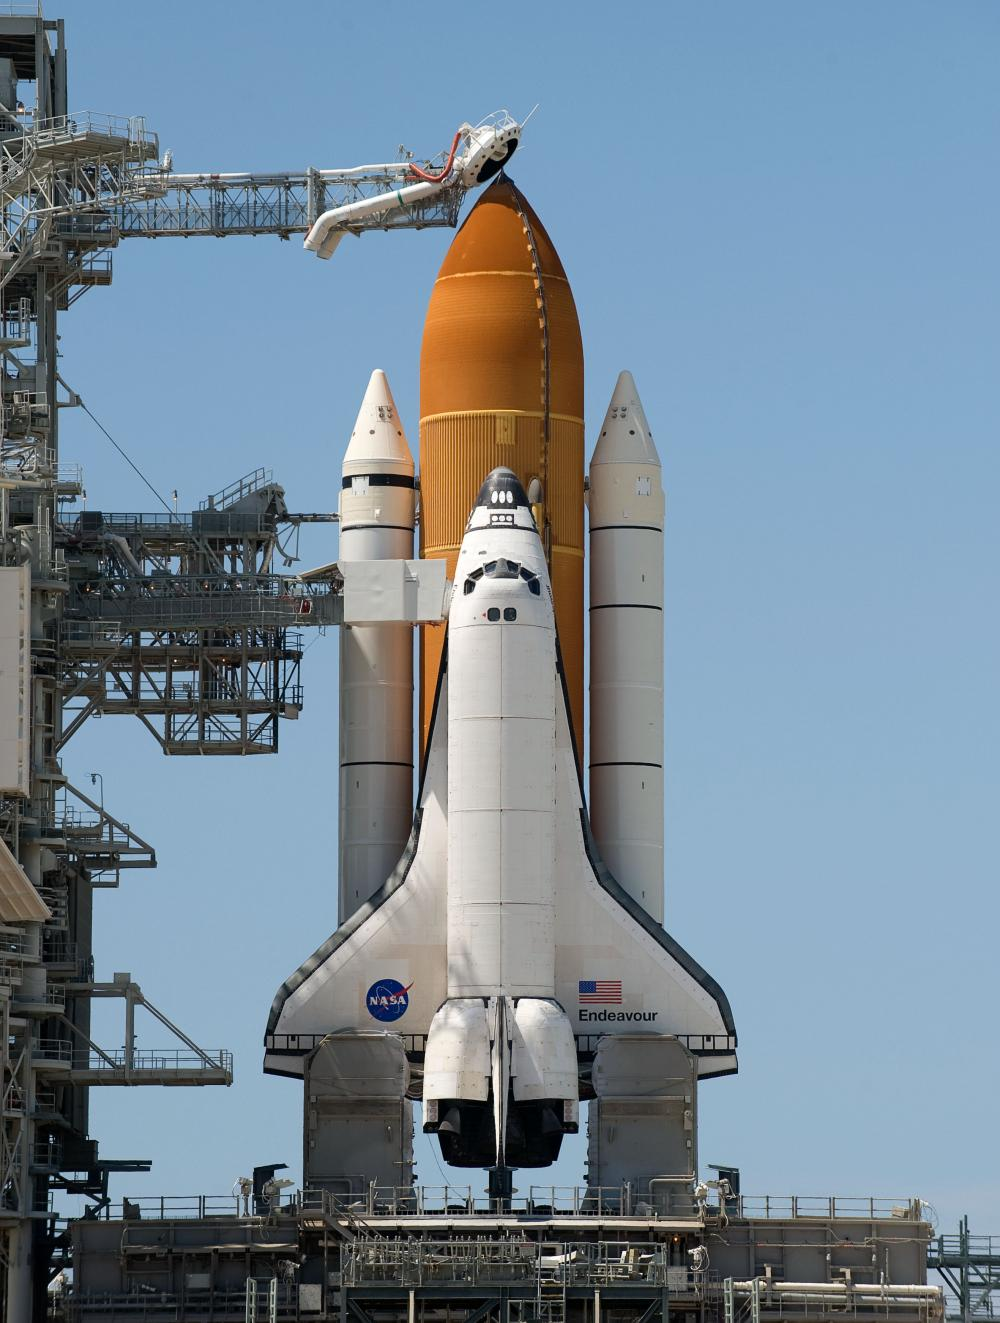 space shuttle endeavour astronauts - photo #6